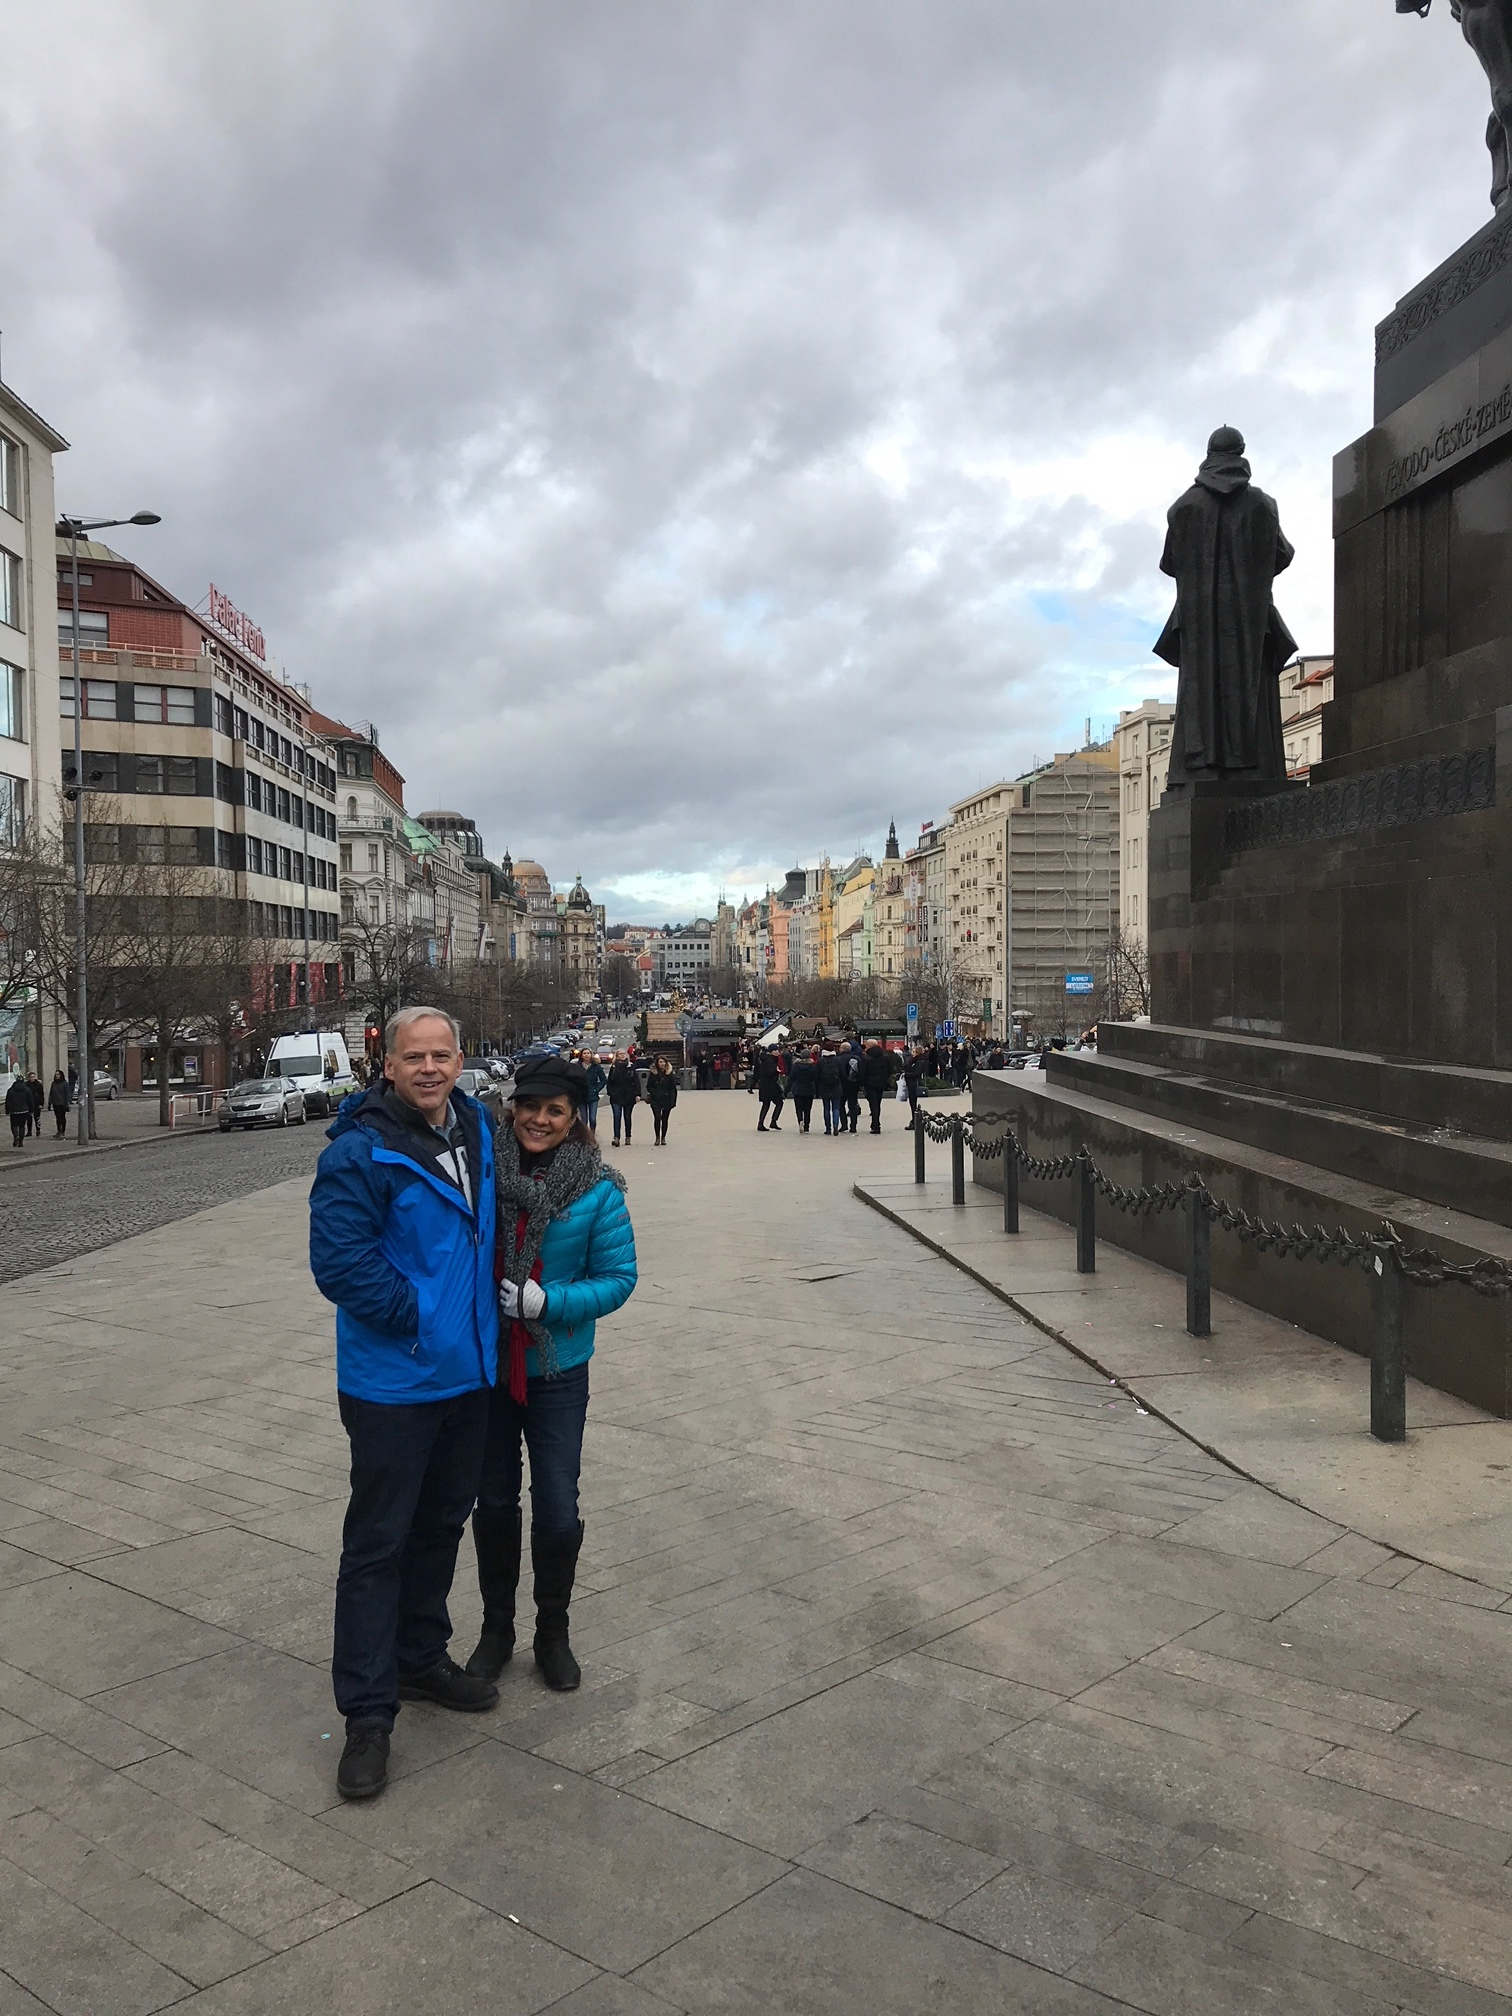 Wenceslas Square - Prauge